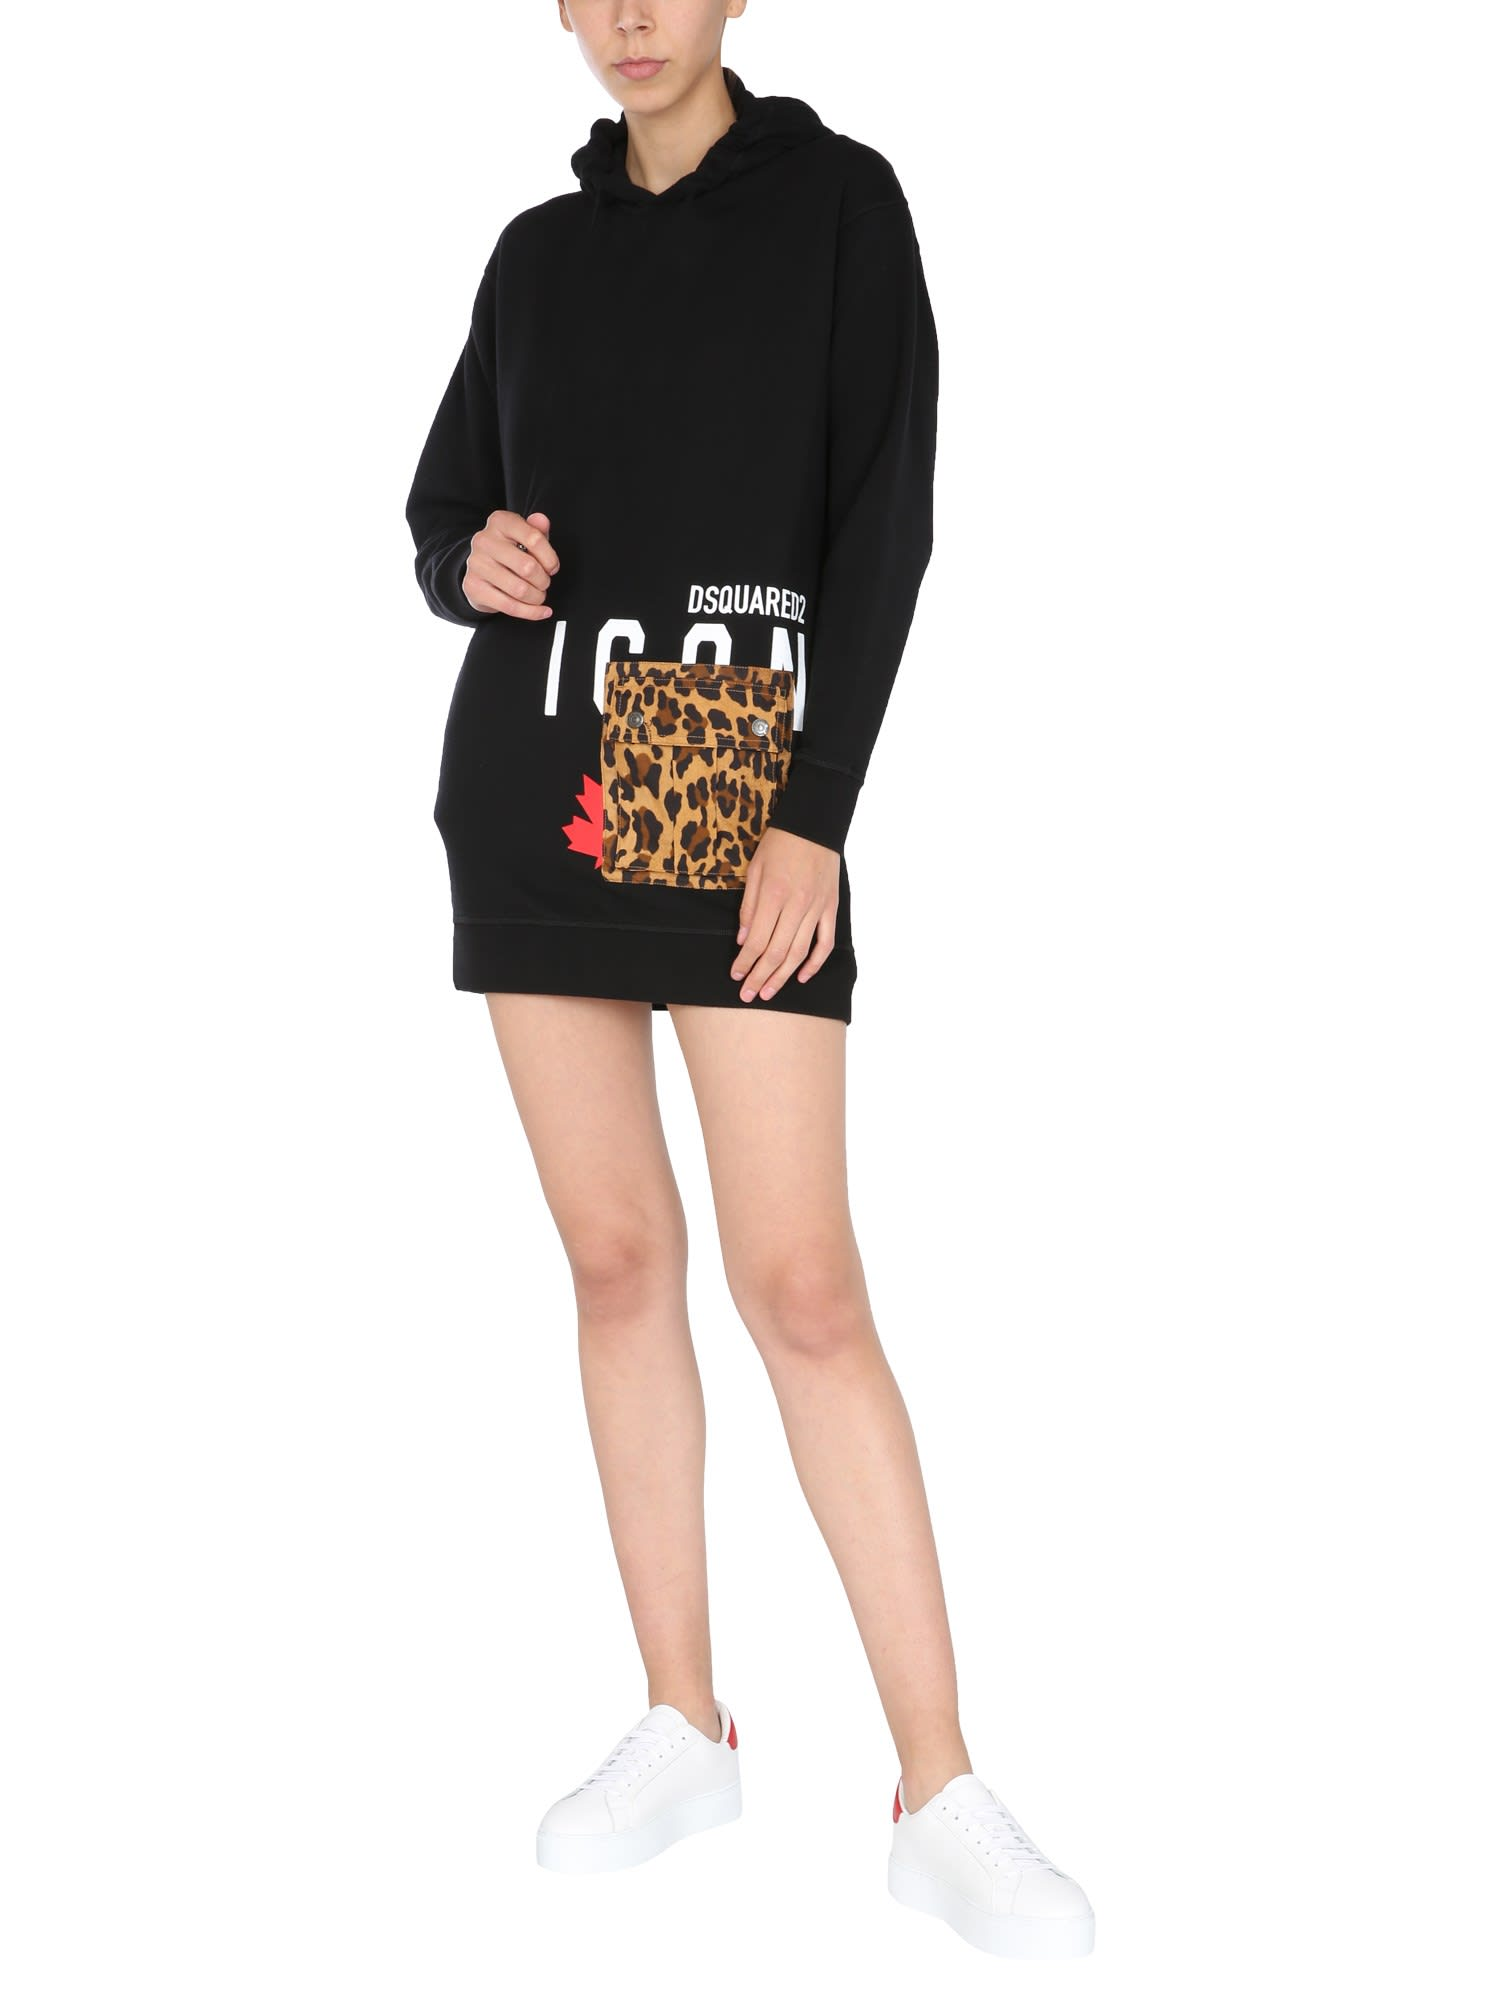 Buy Dsquared2 Mini Dress Hooded Sweatshirt online, shop Dsquared2 with free shipping